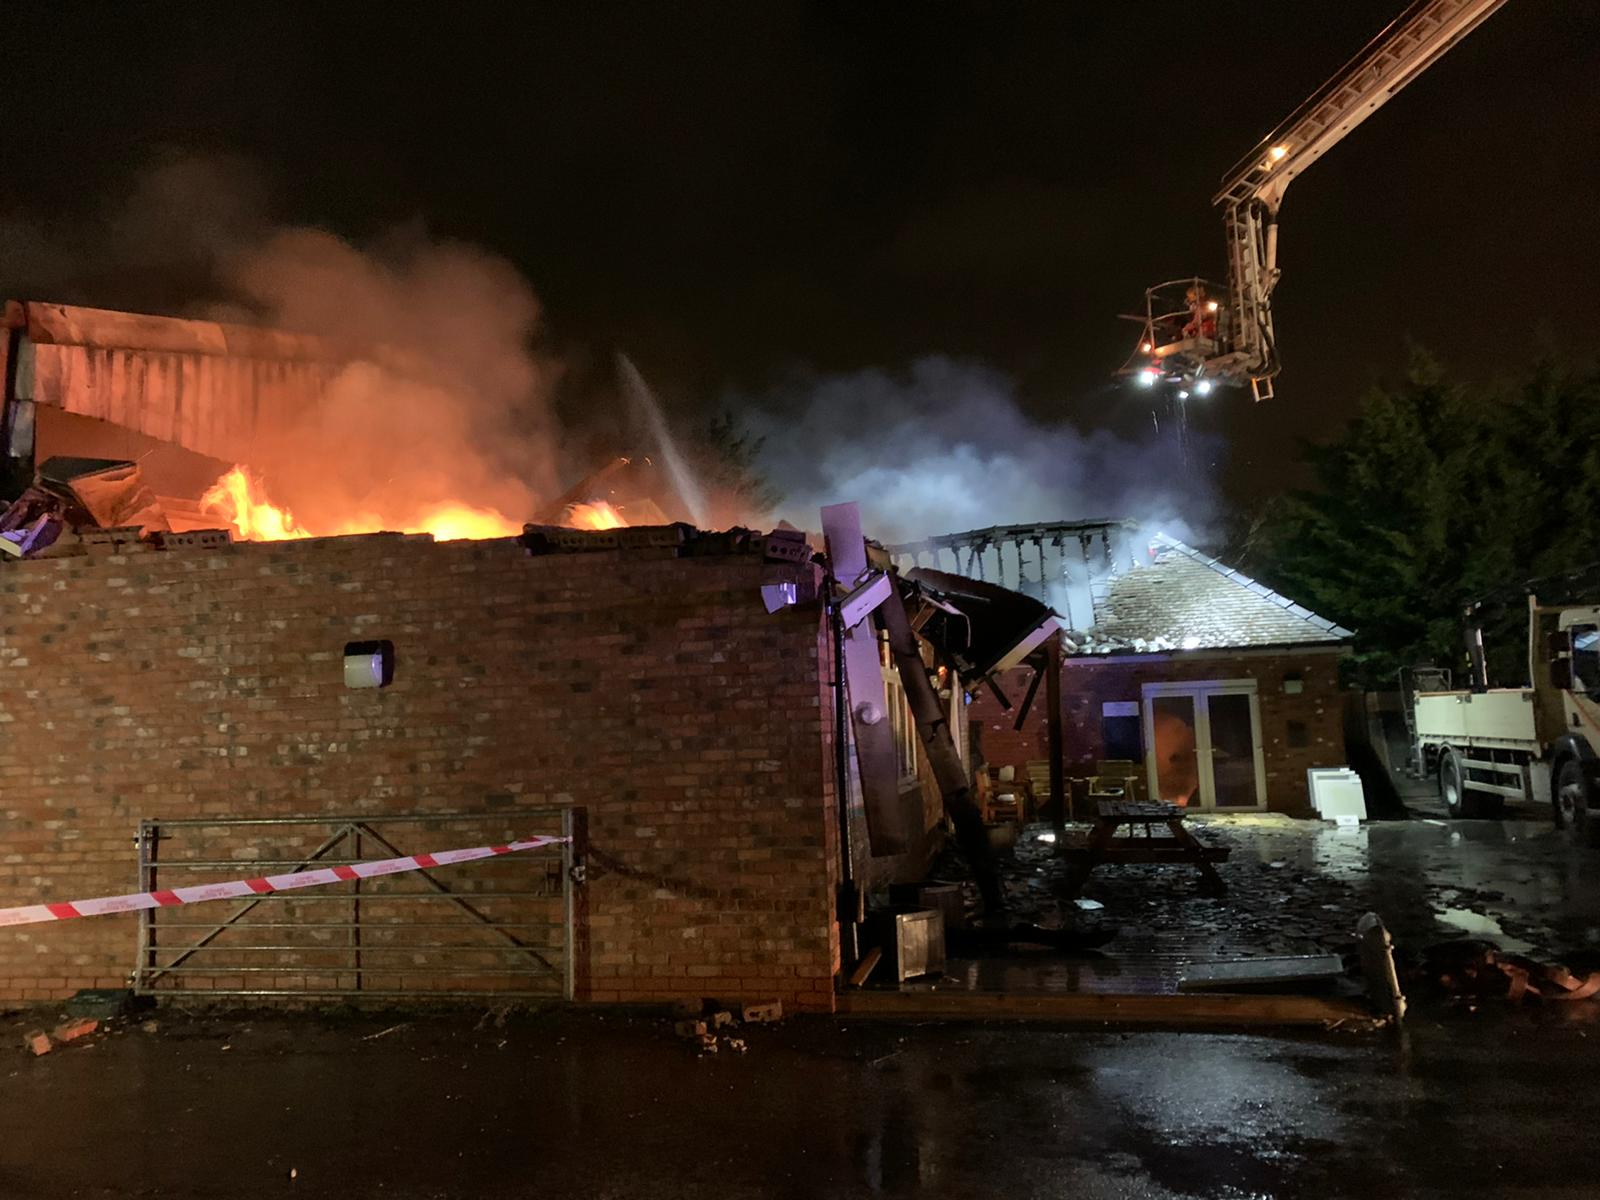 Six fire engines were called to tackle a huge blaze in Stockport last night, The Manc